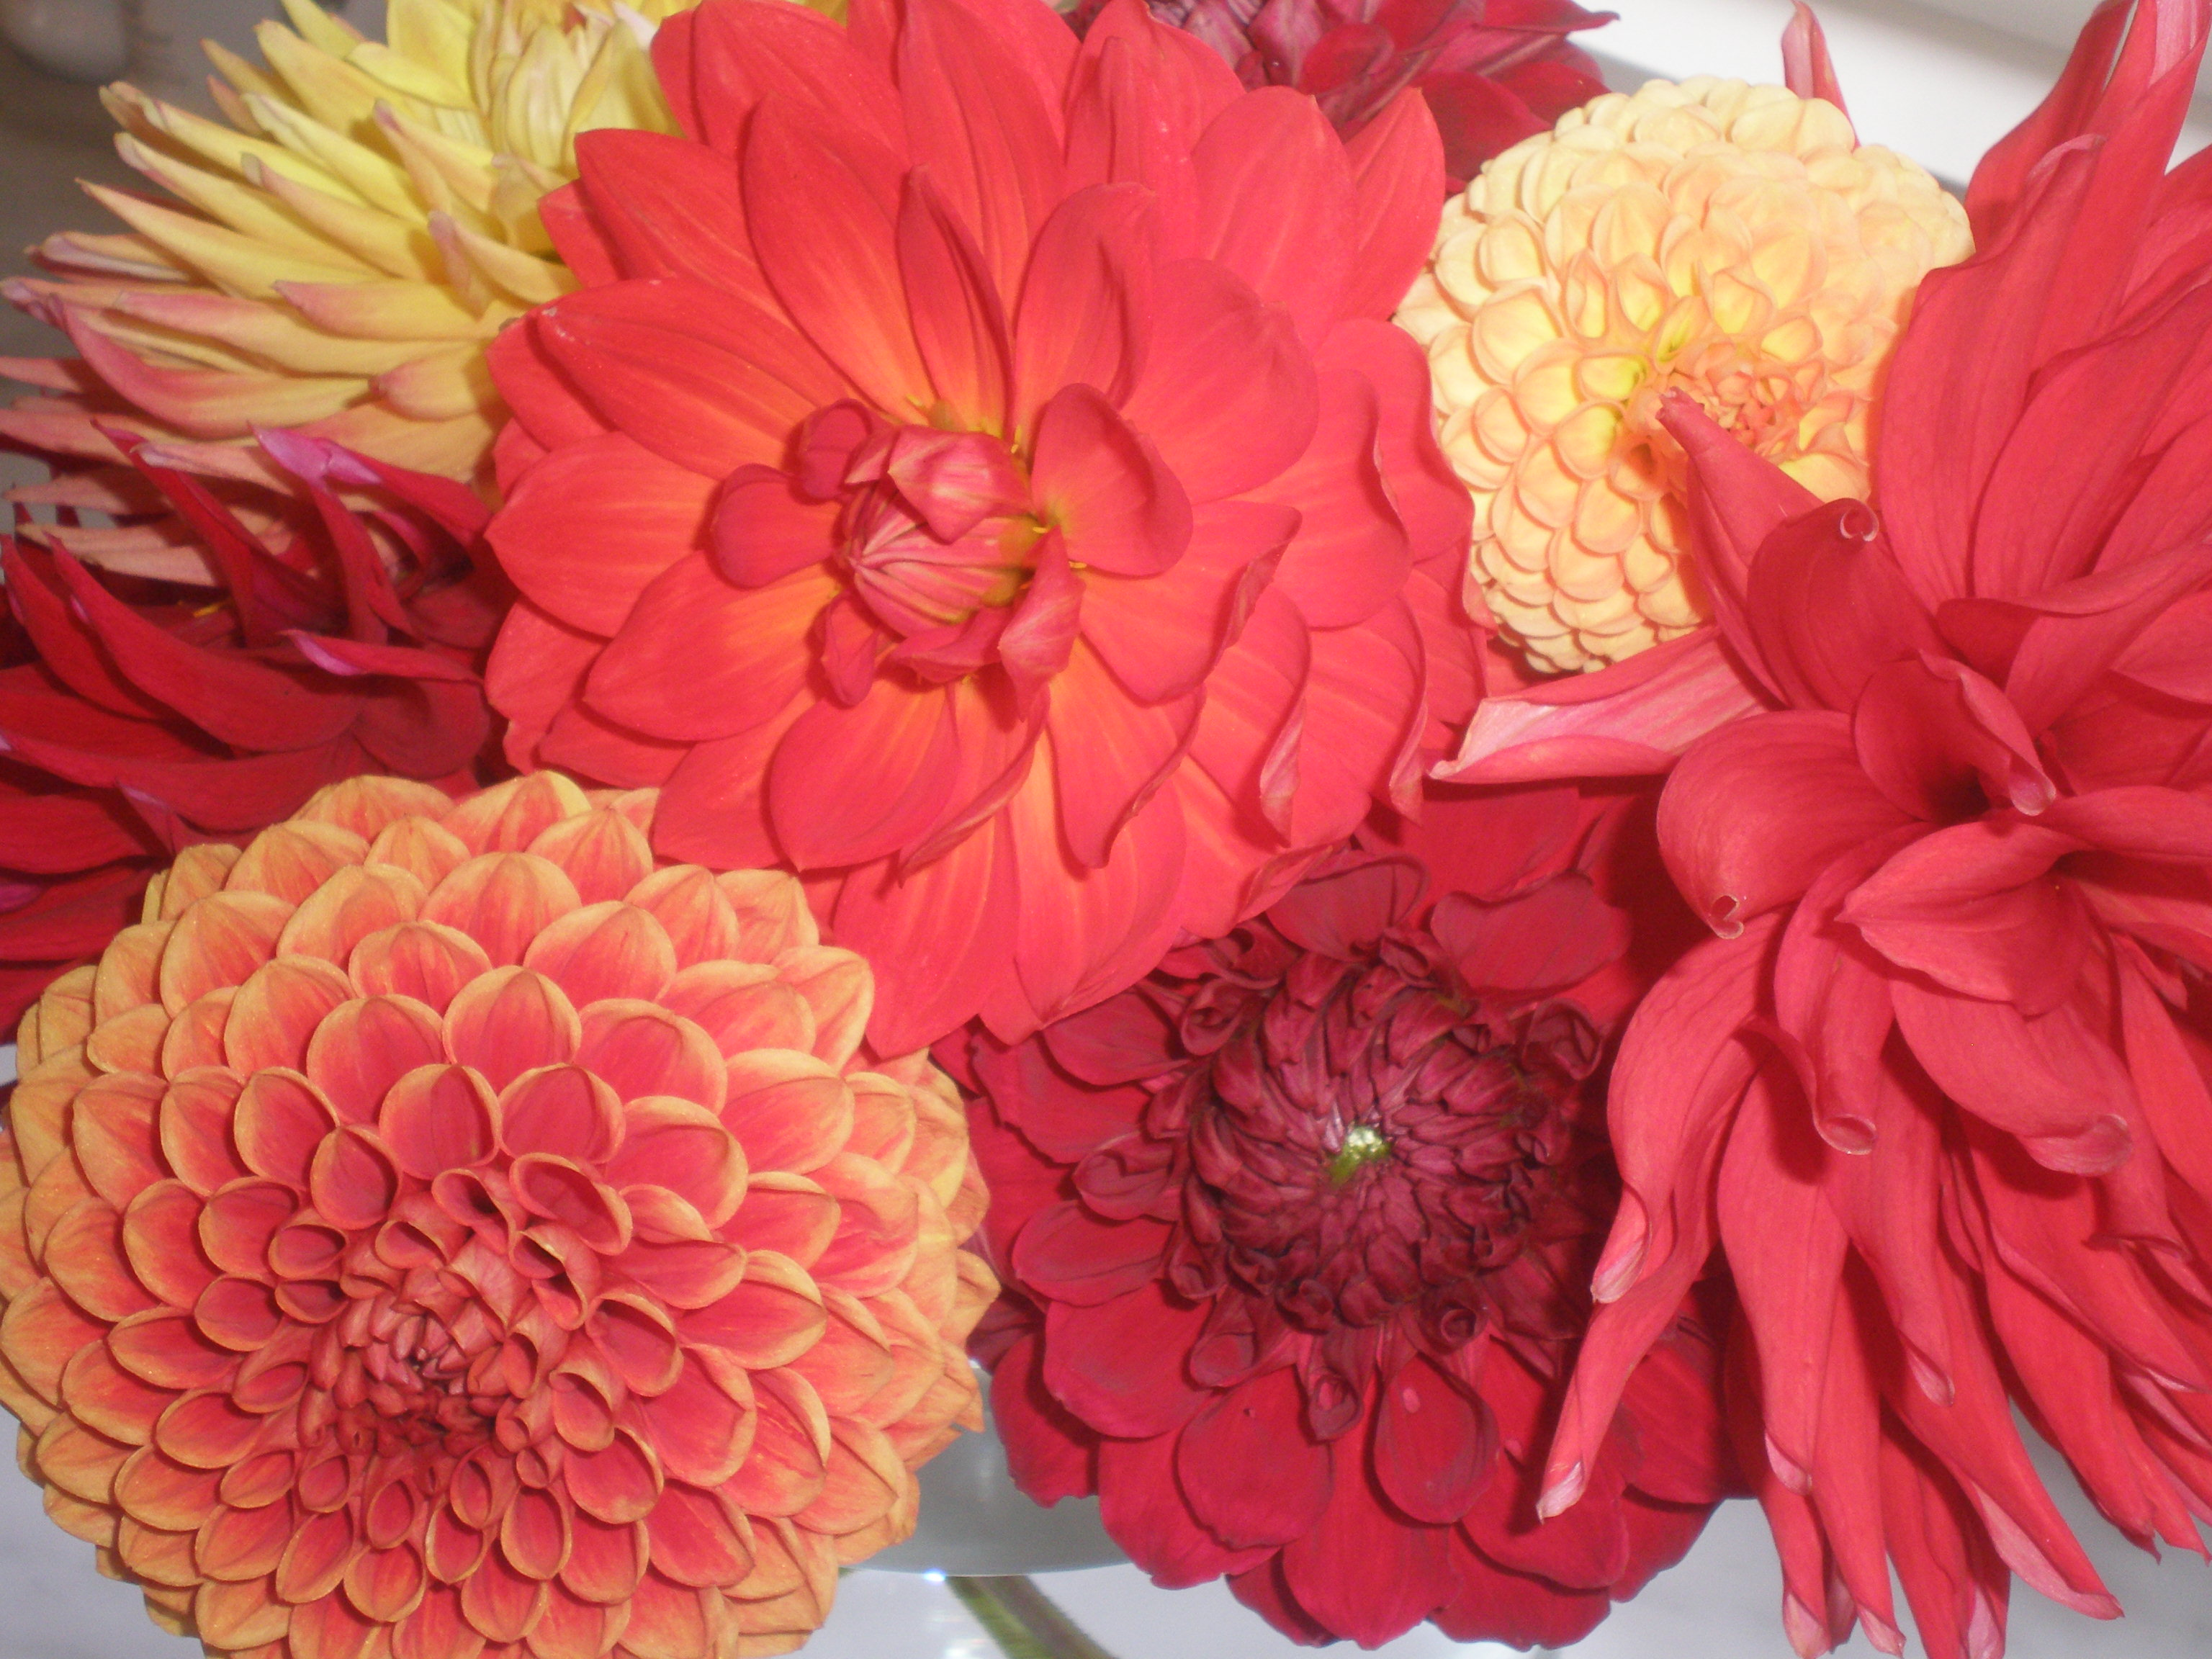 Exceptional Coral Colored Flowers Methods - Totaltravel.US